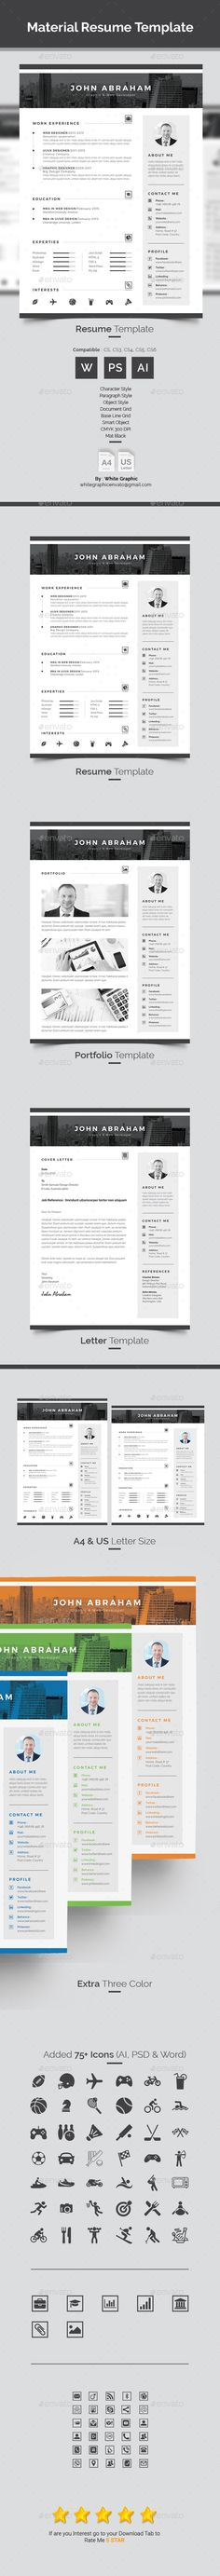 A Free Template For An Eye-Catching, Infographic-Style Vertical - free eye catching resume templates